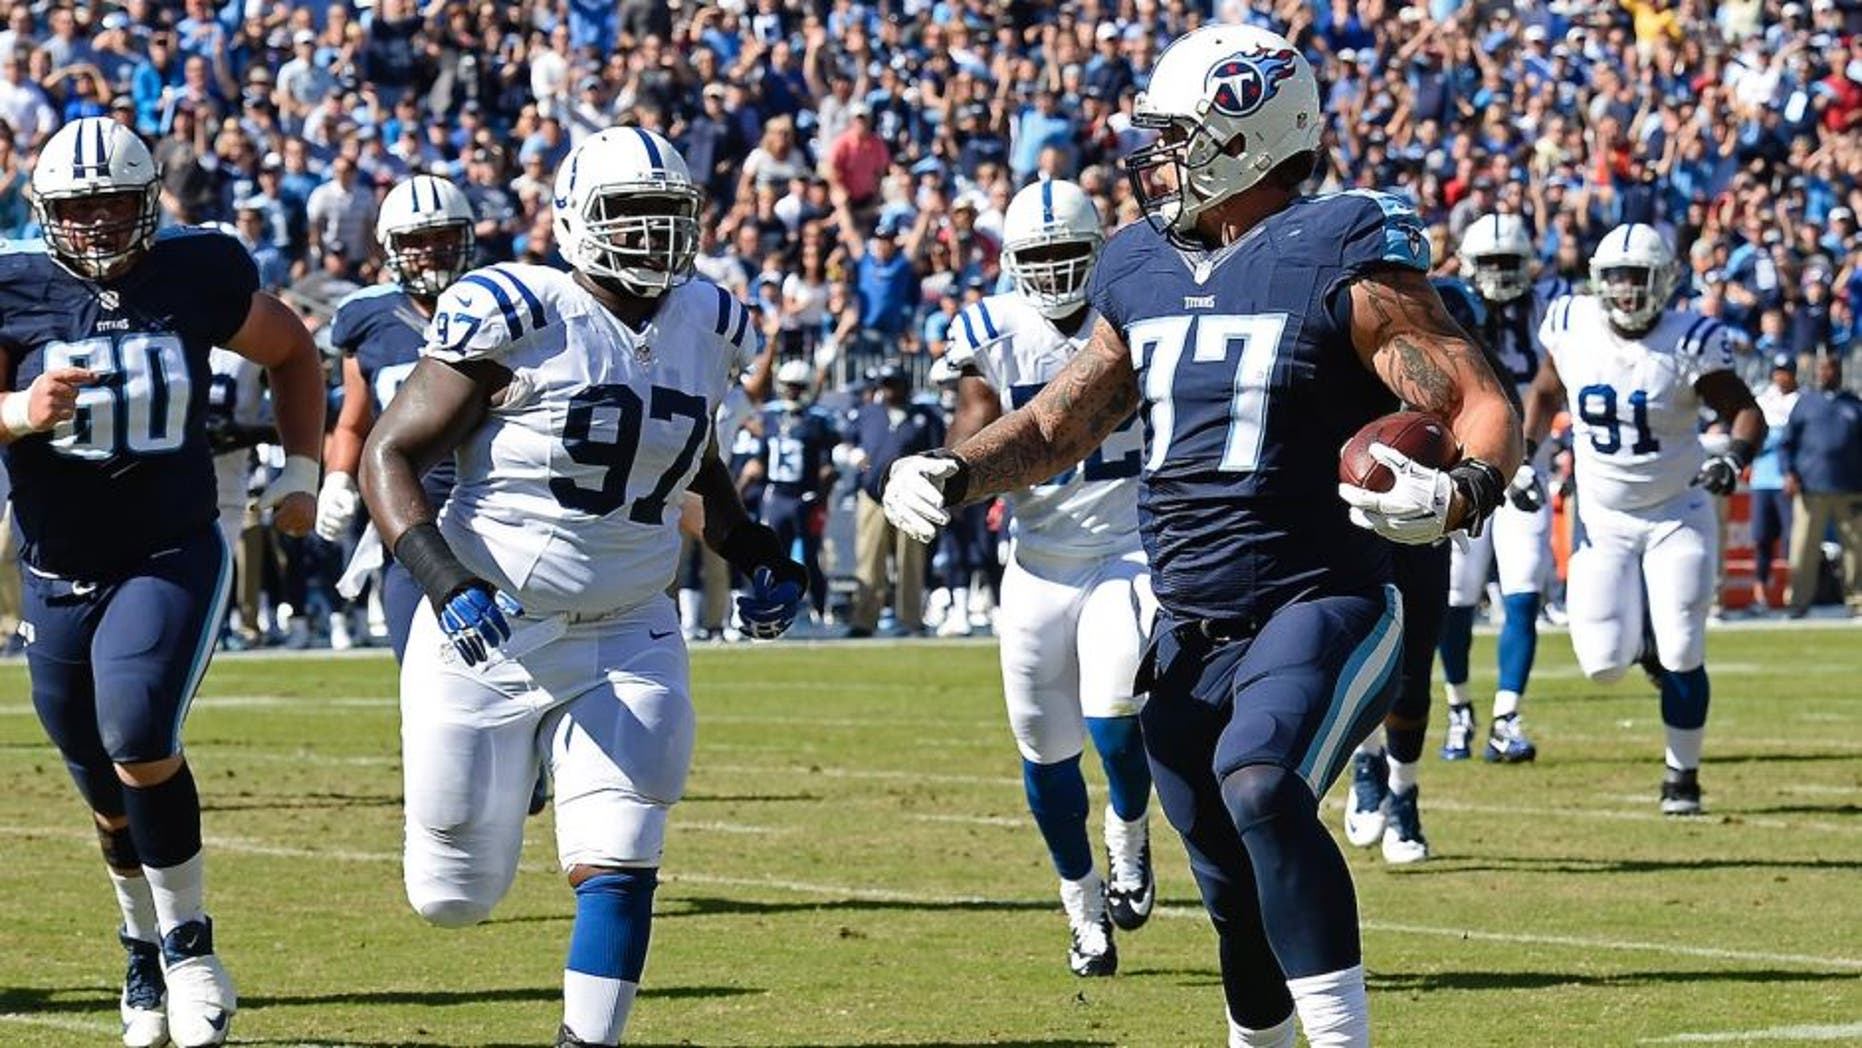 Tennessee Titans tackle Taylor Lewan (77) beats Indianapolis Colts defensive tackle Arthur Jones (97) to the end zone as Lewan scores a touchdown on a 10-yard pass play in the first half of an NFL football game Sunday, Oct. 23, 2016, in Nashville, Tenn. (AP Photo/Mark Zaleski)